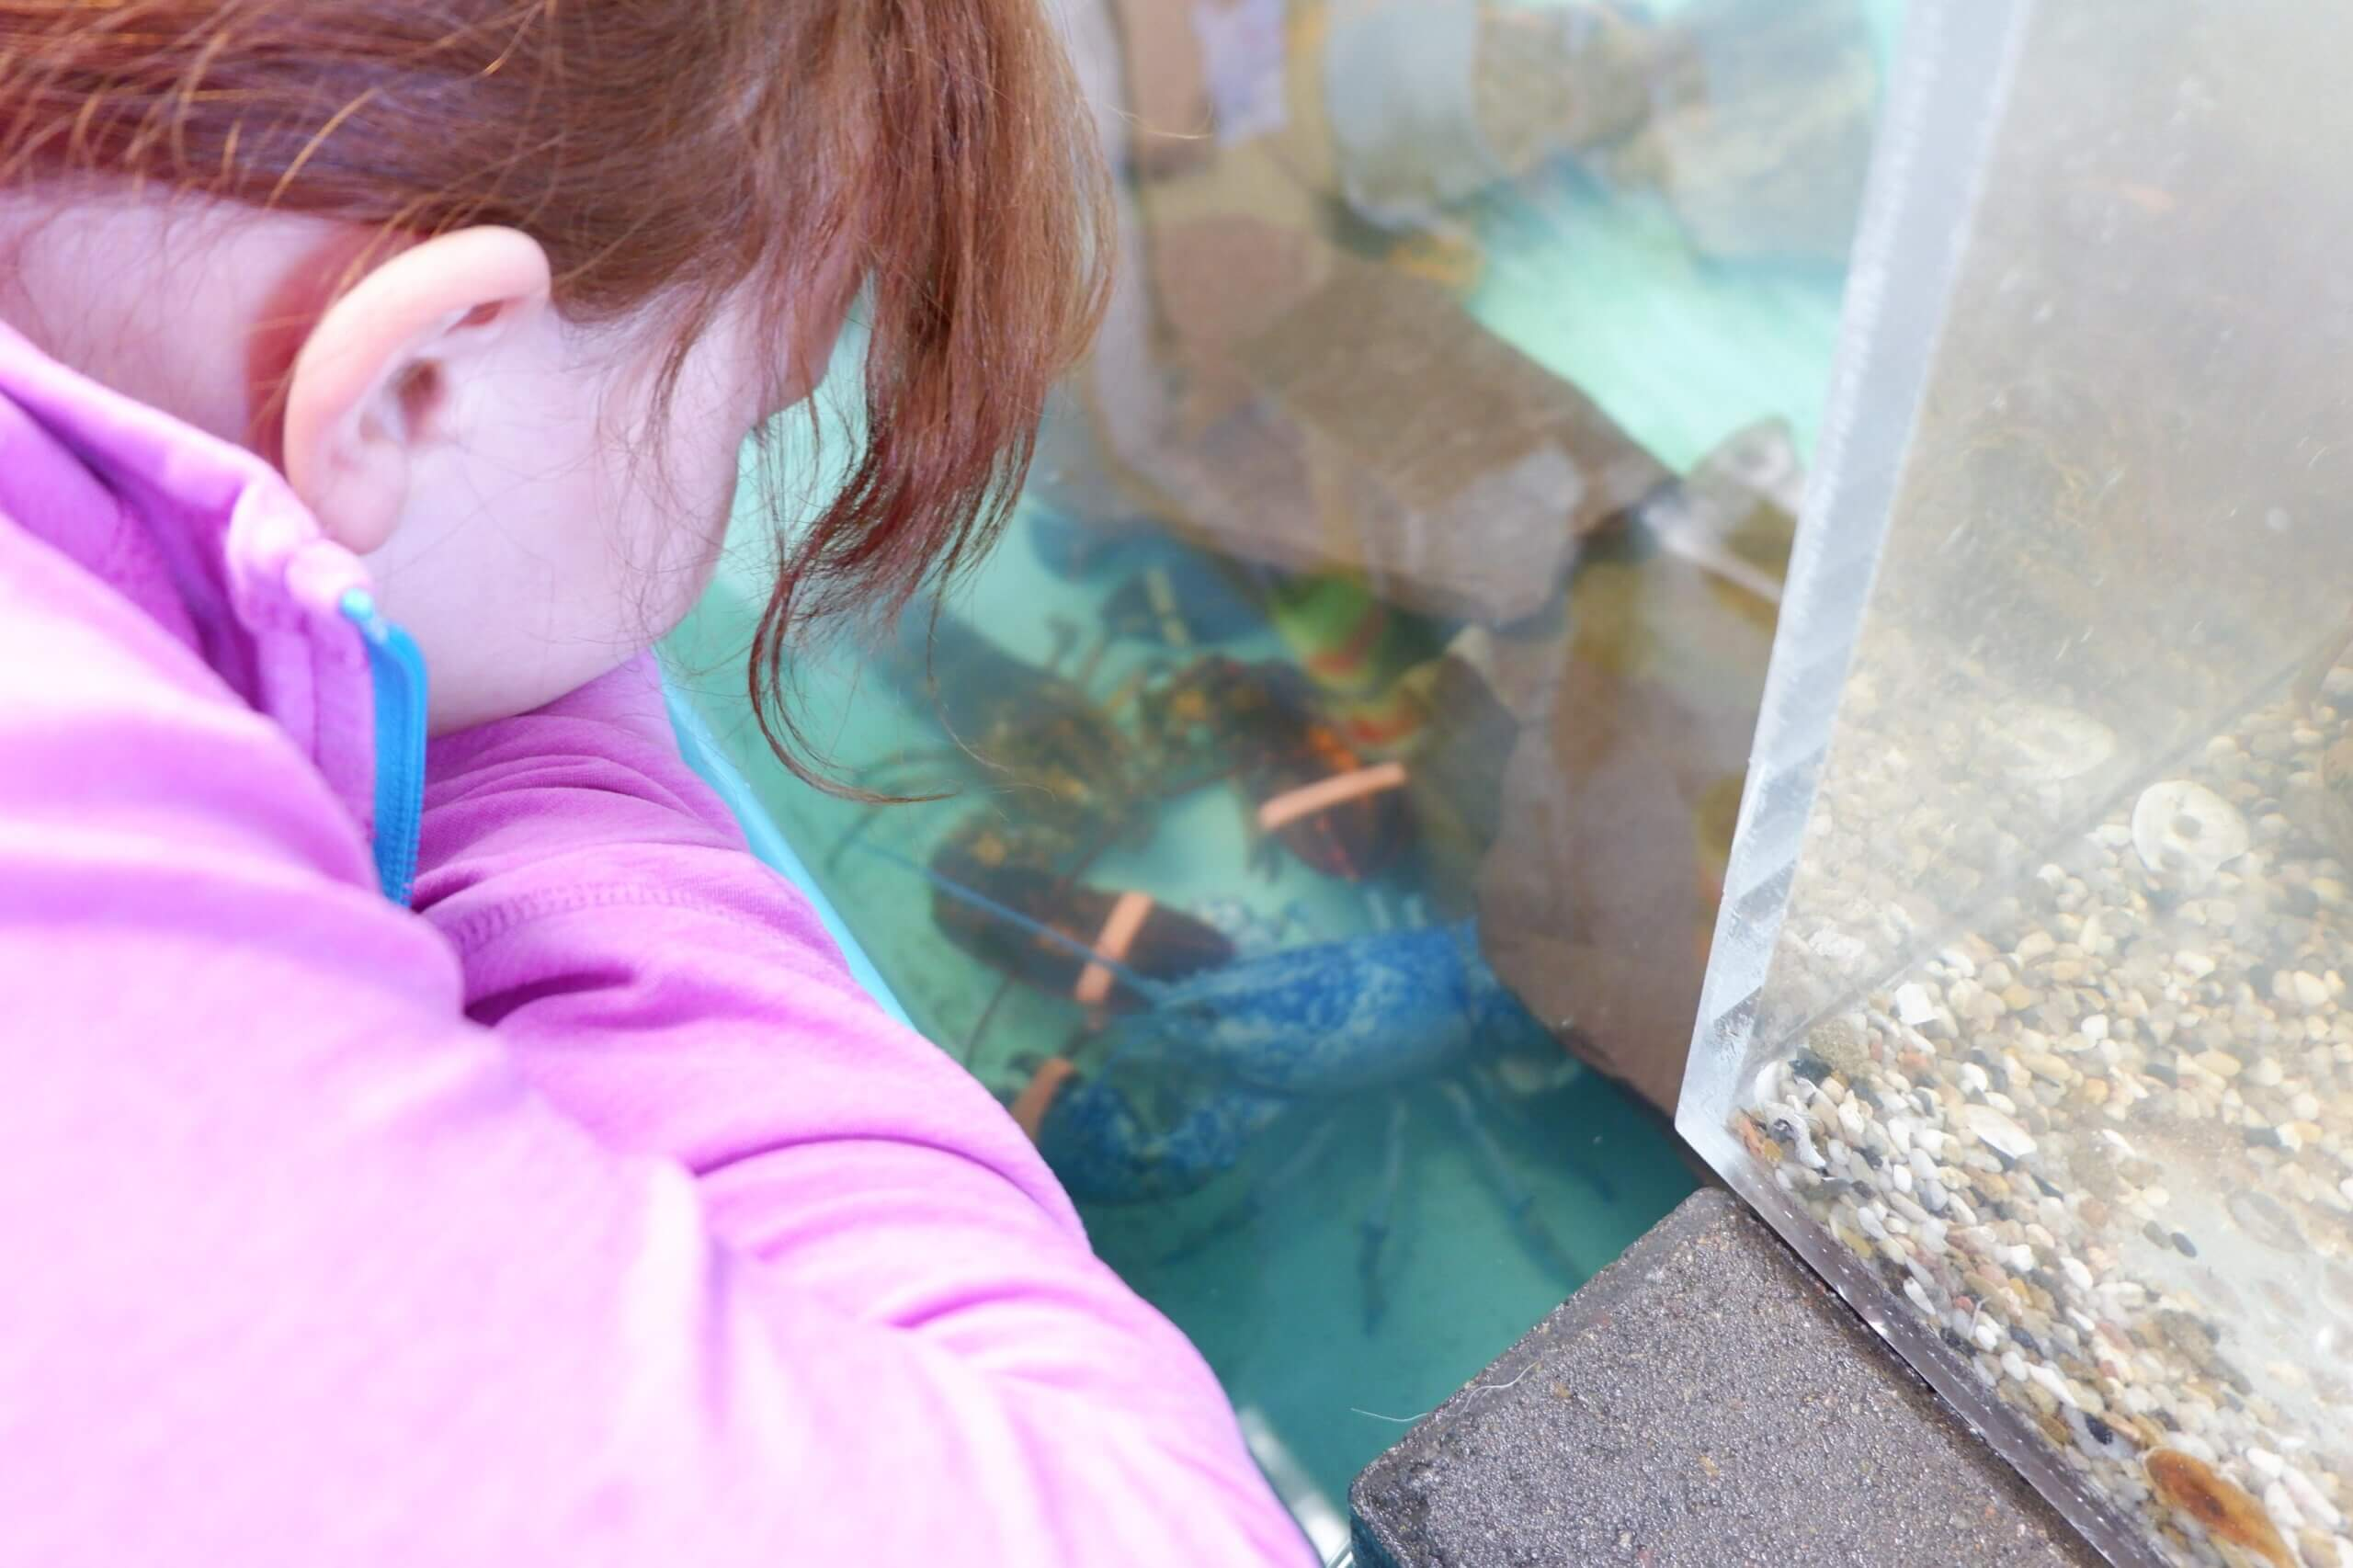 pickle planet kid looking at a blue lobster in the tank at the homarus ecocentre in shediac